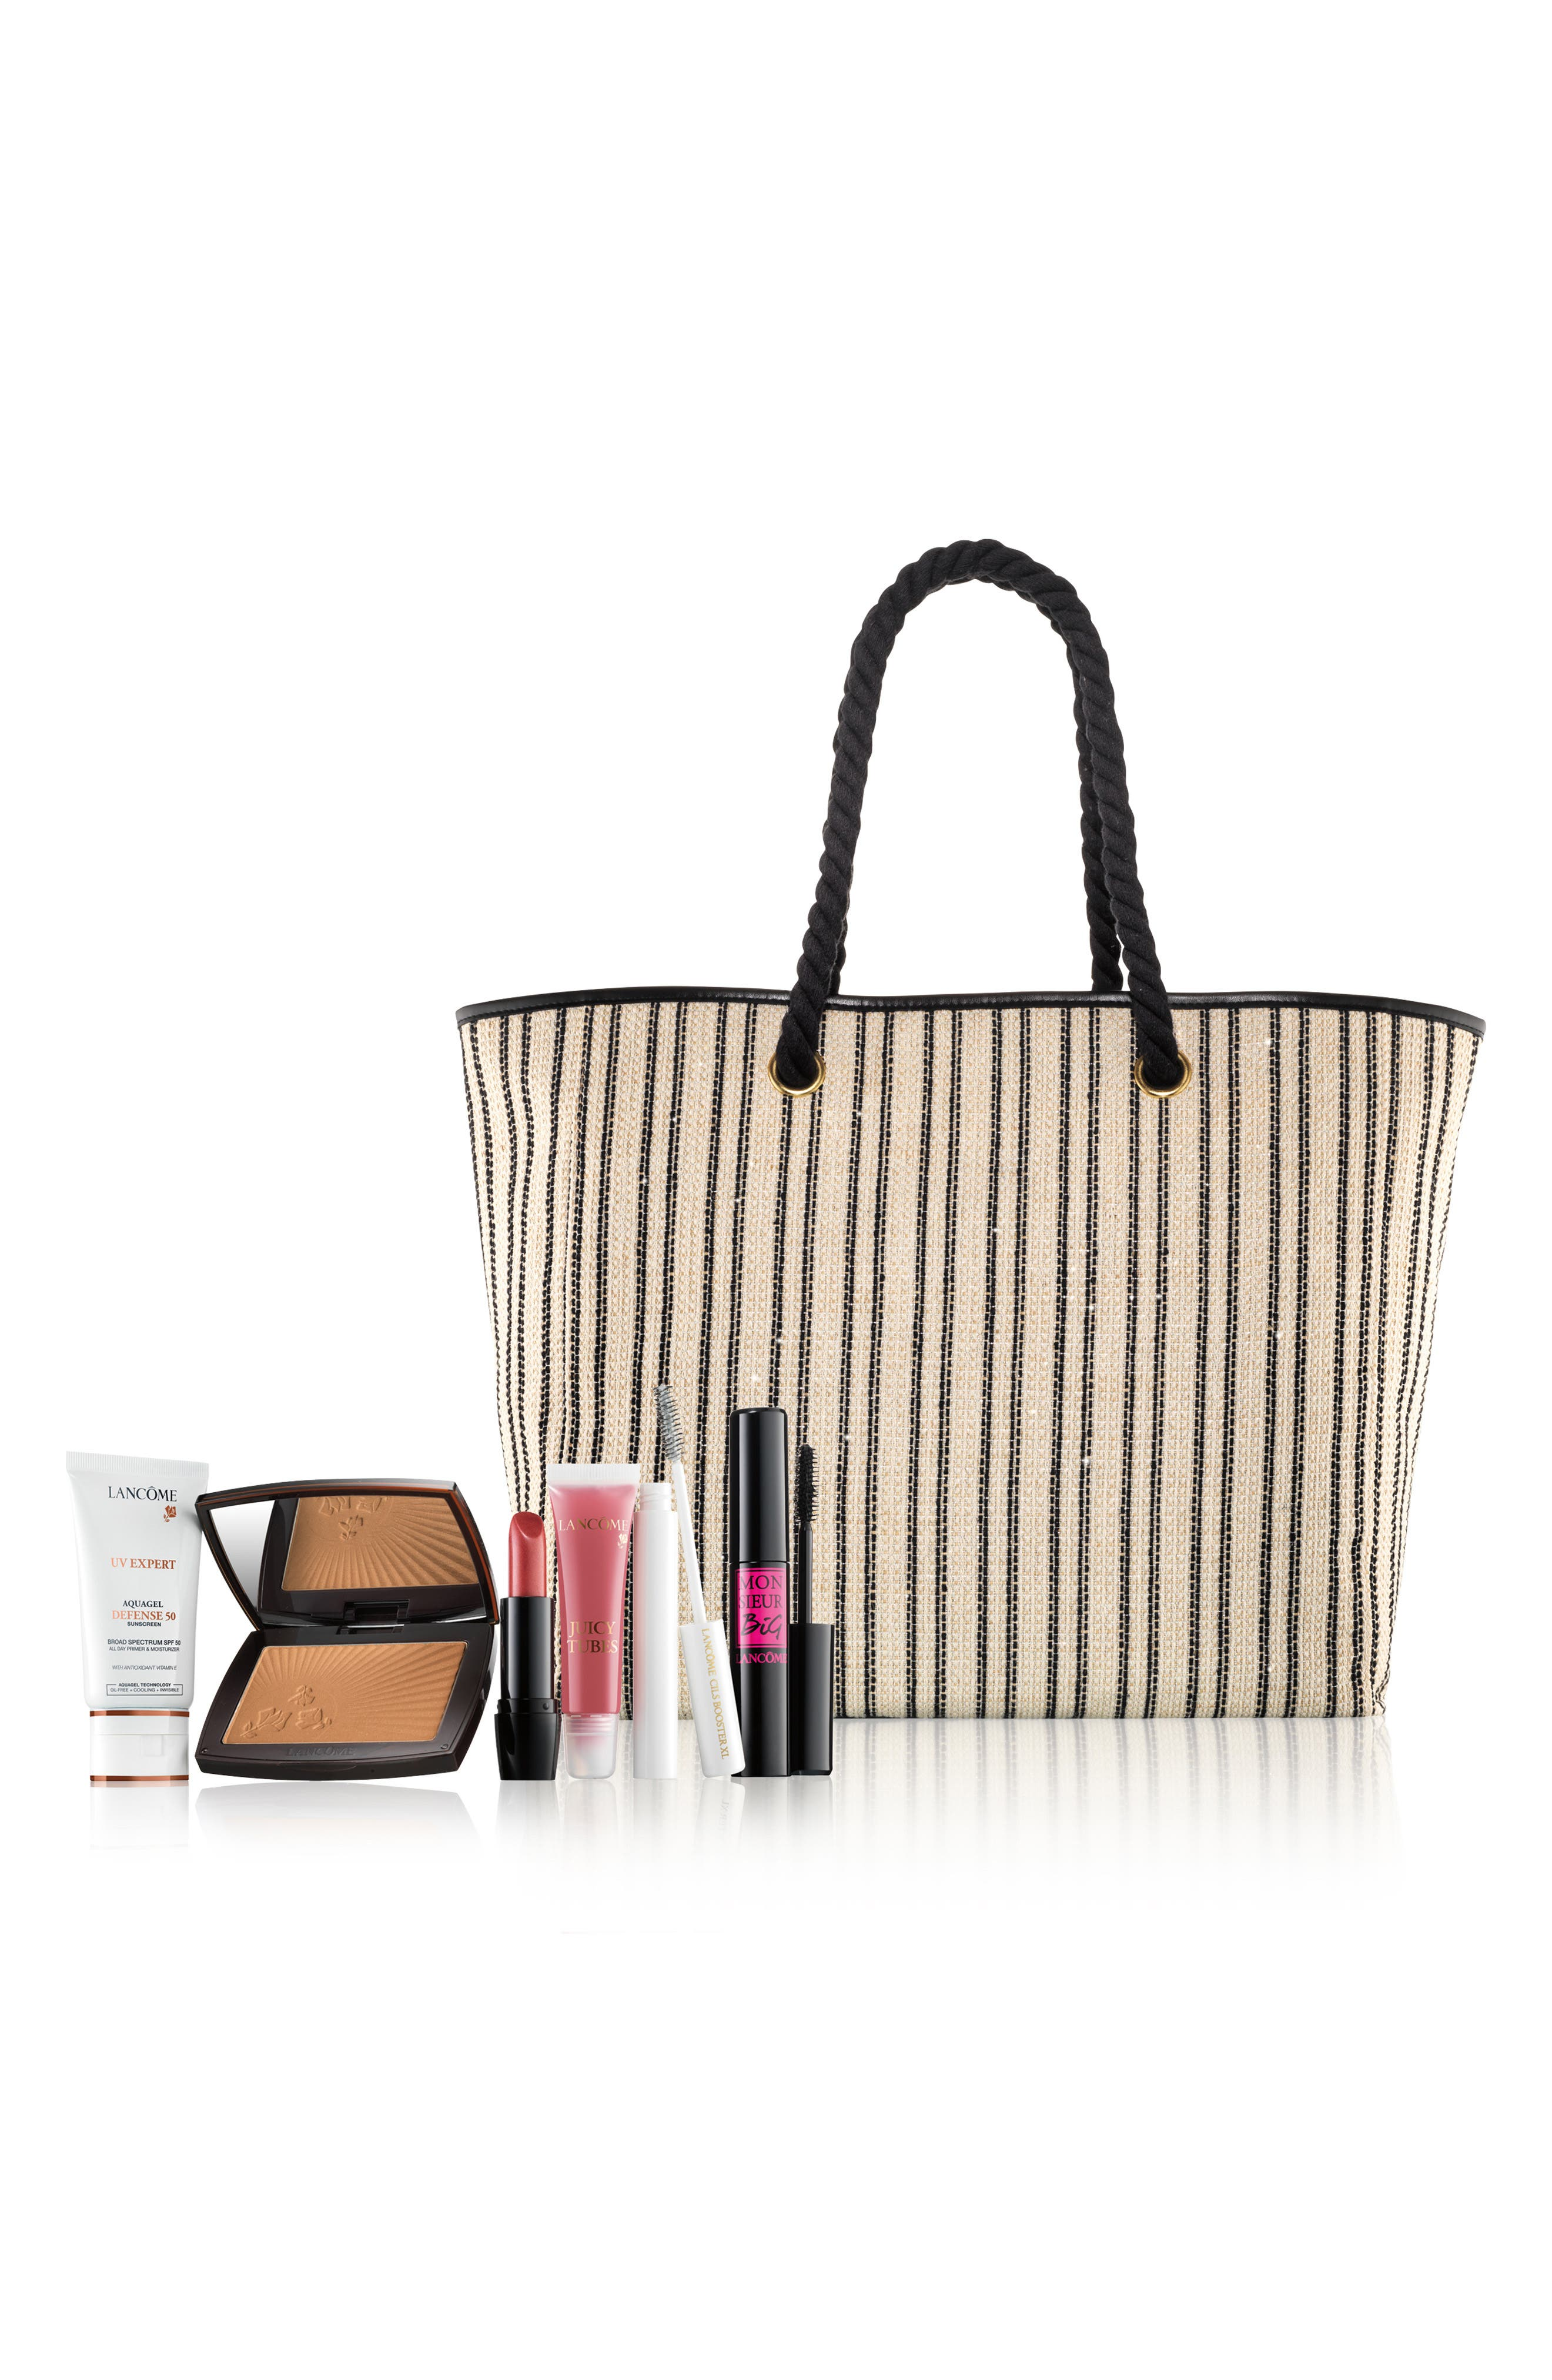 LANCÔME Parisian Glow Collection, Main, color, NO COLOR